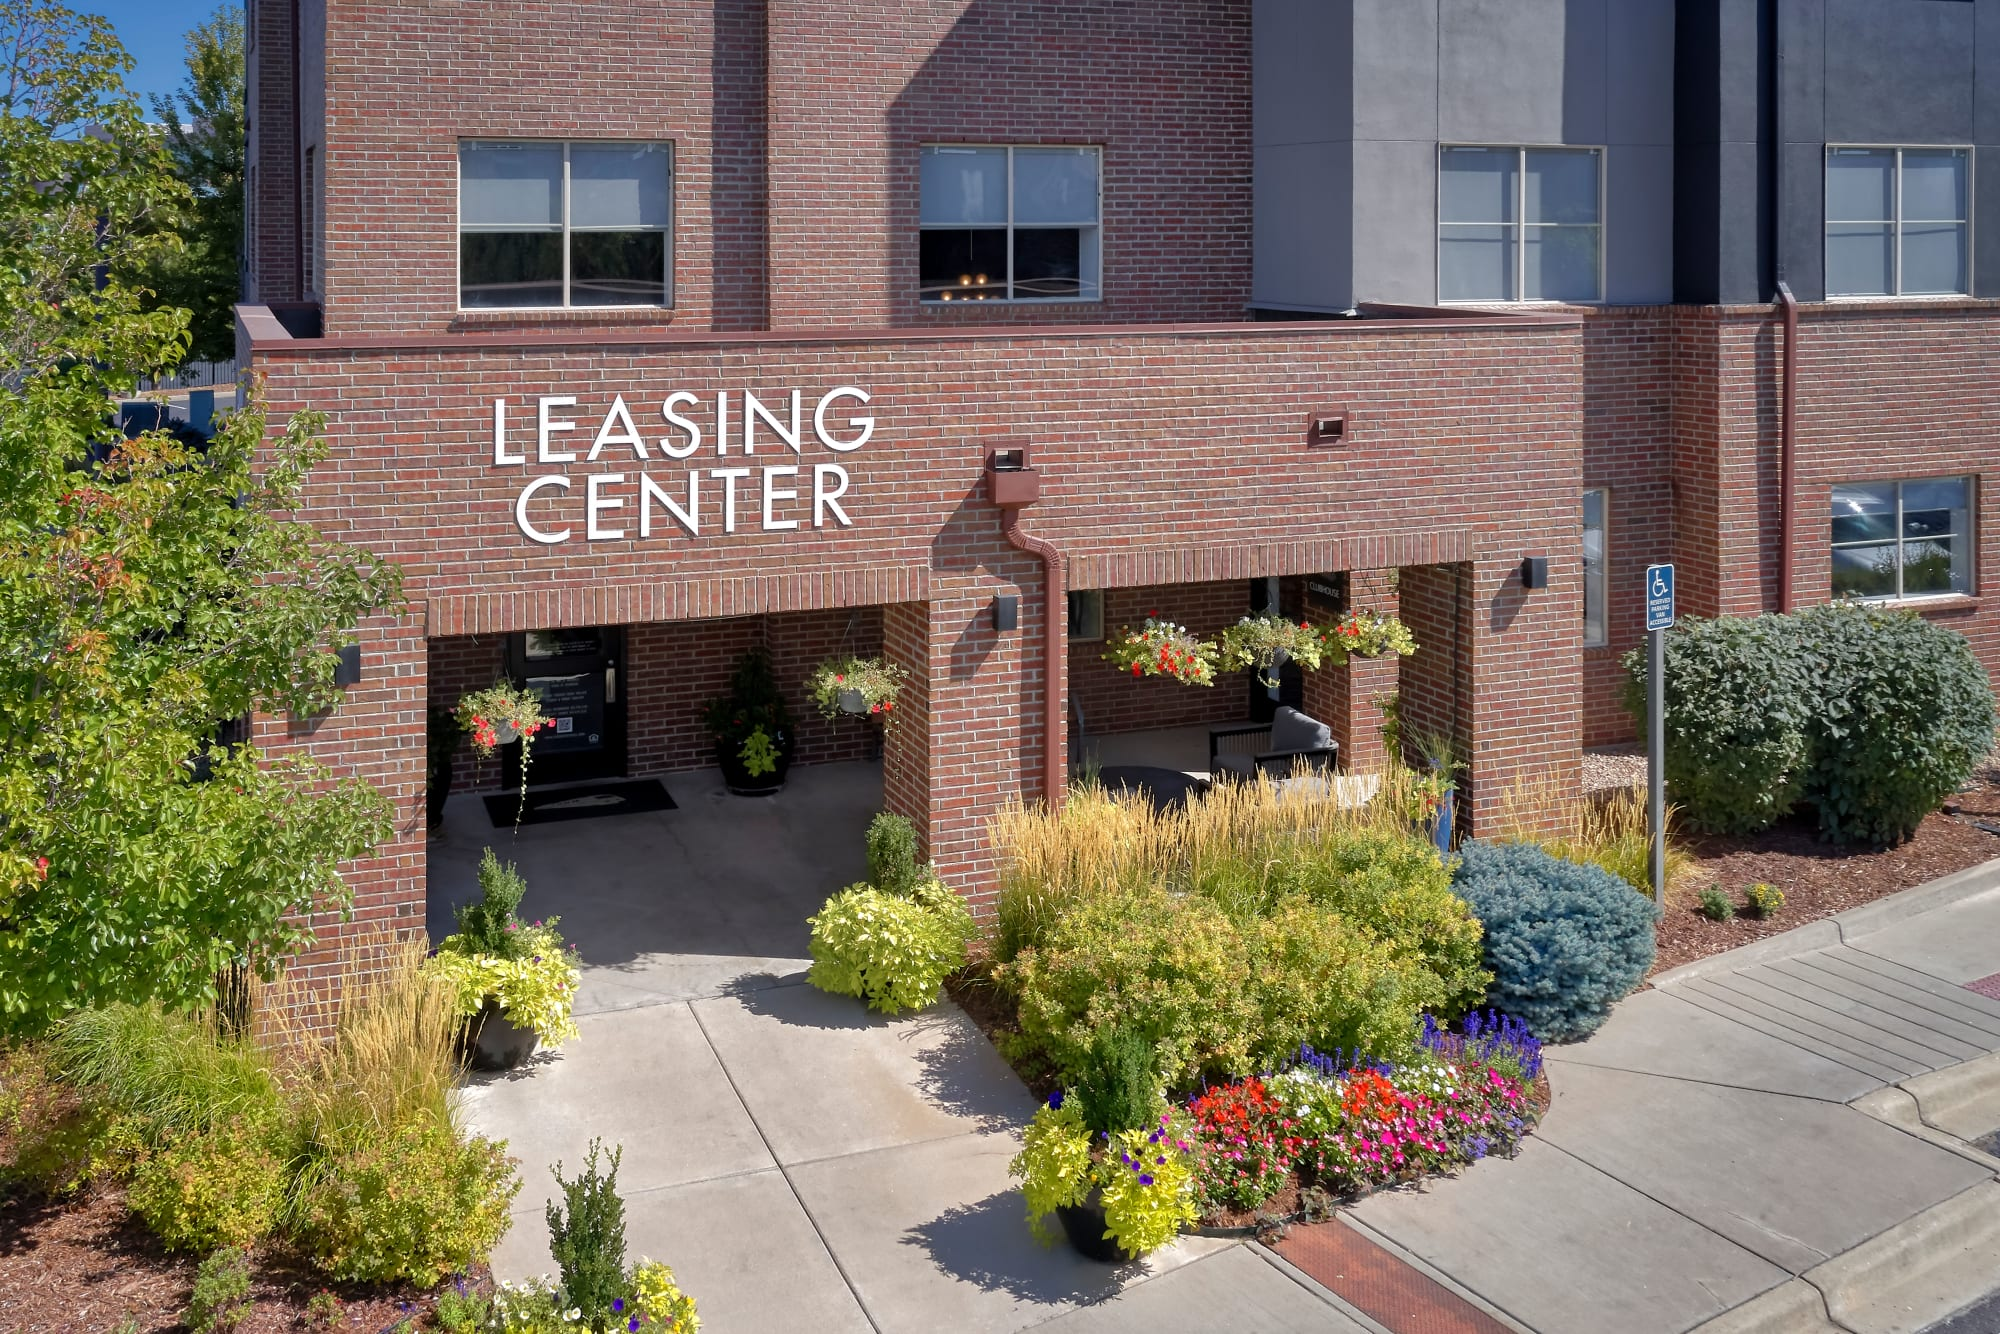 Leasing center entrance at The Rail at Inverness in Englewood, Colorado